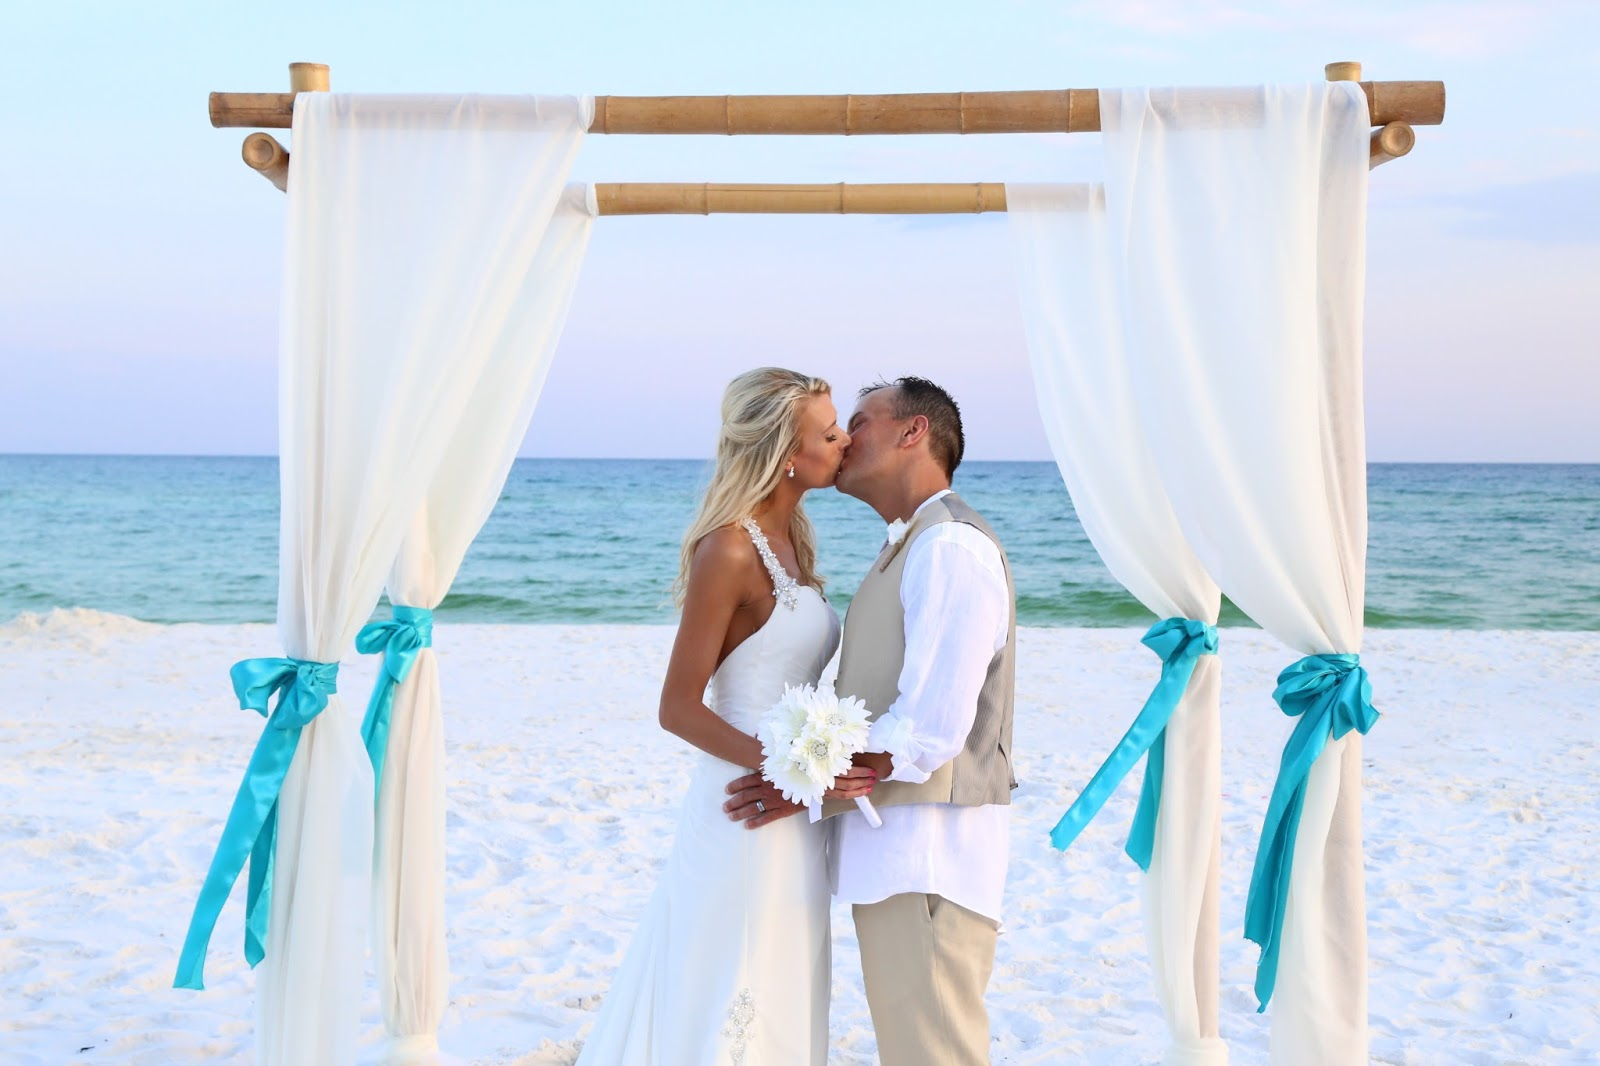 Decorated Bamboo Wedding Arbor For Your Destin Beach Turquoise And Ivory Fabric Sashes